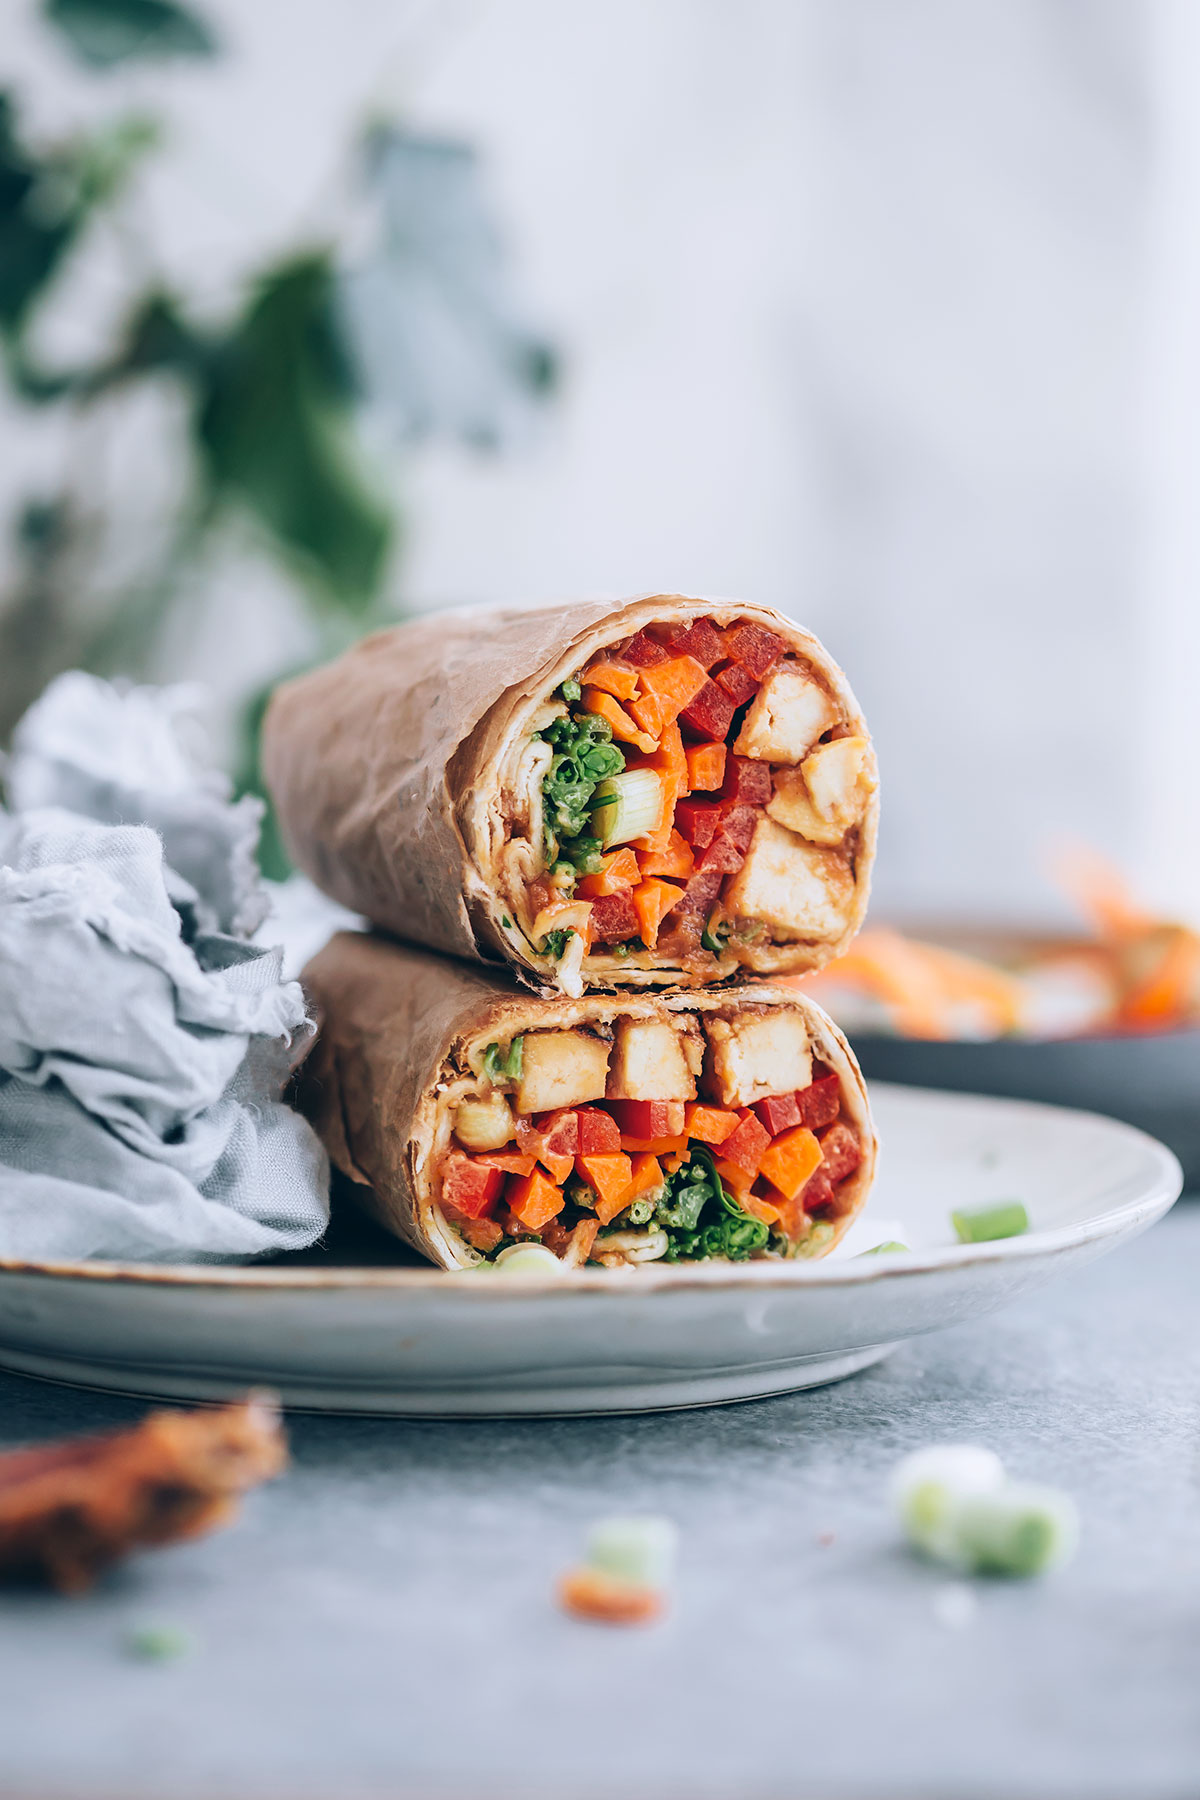 Packed With Protein and Veggies, These Ginger Peanut Tofu Wraps Are a Lunchtime Win